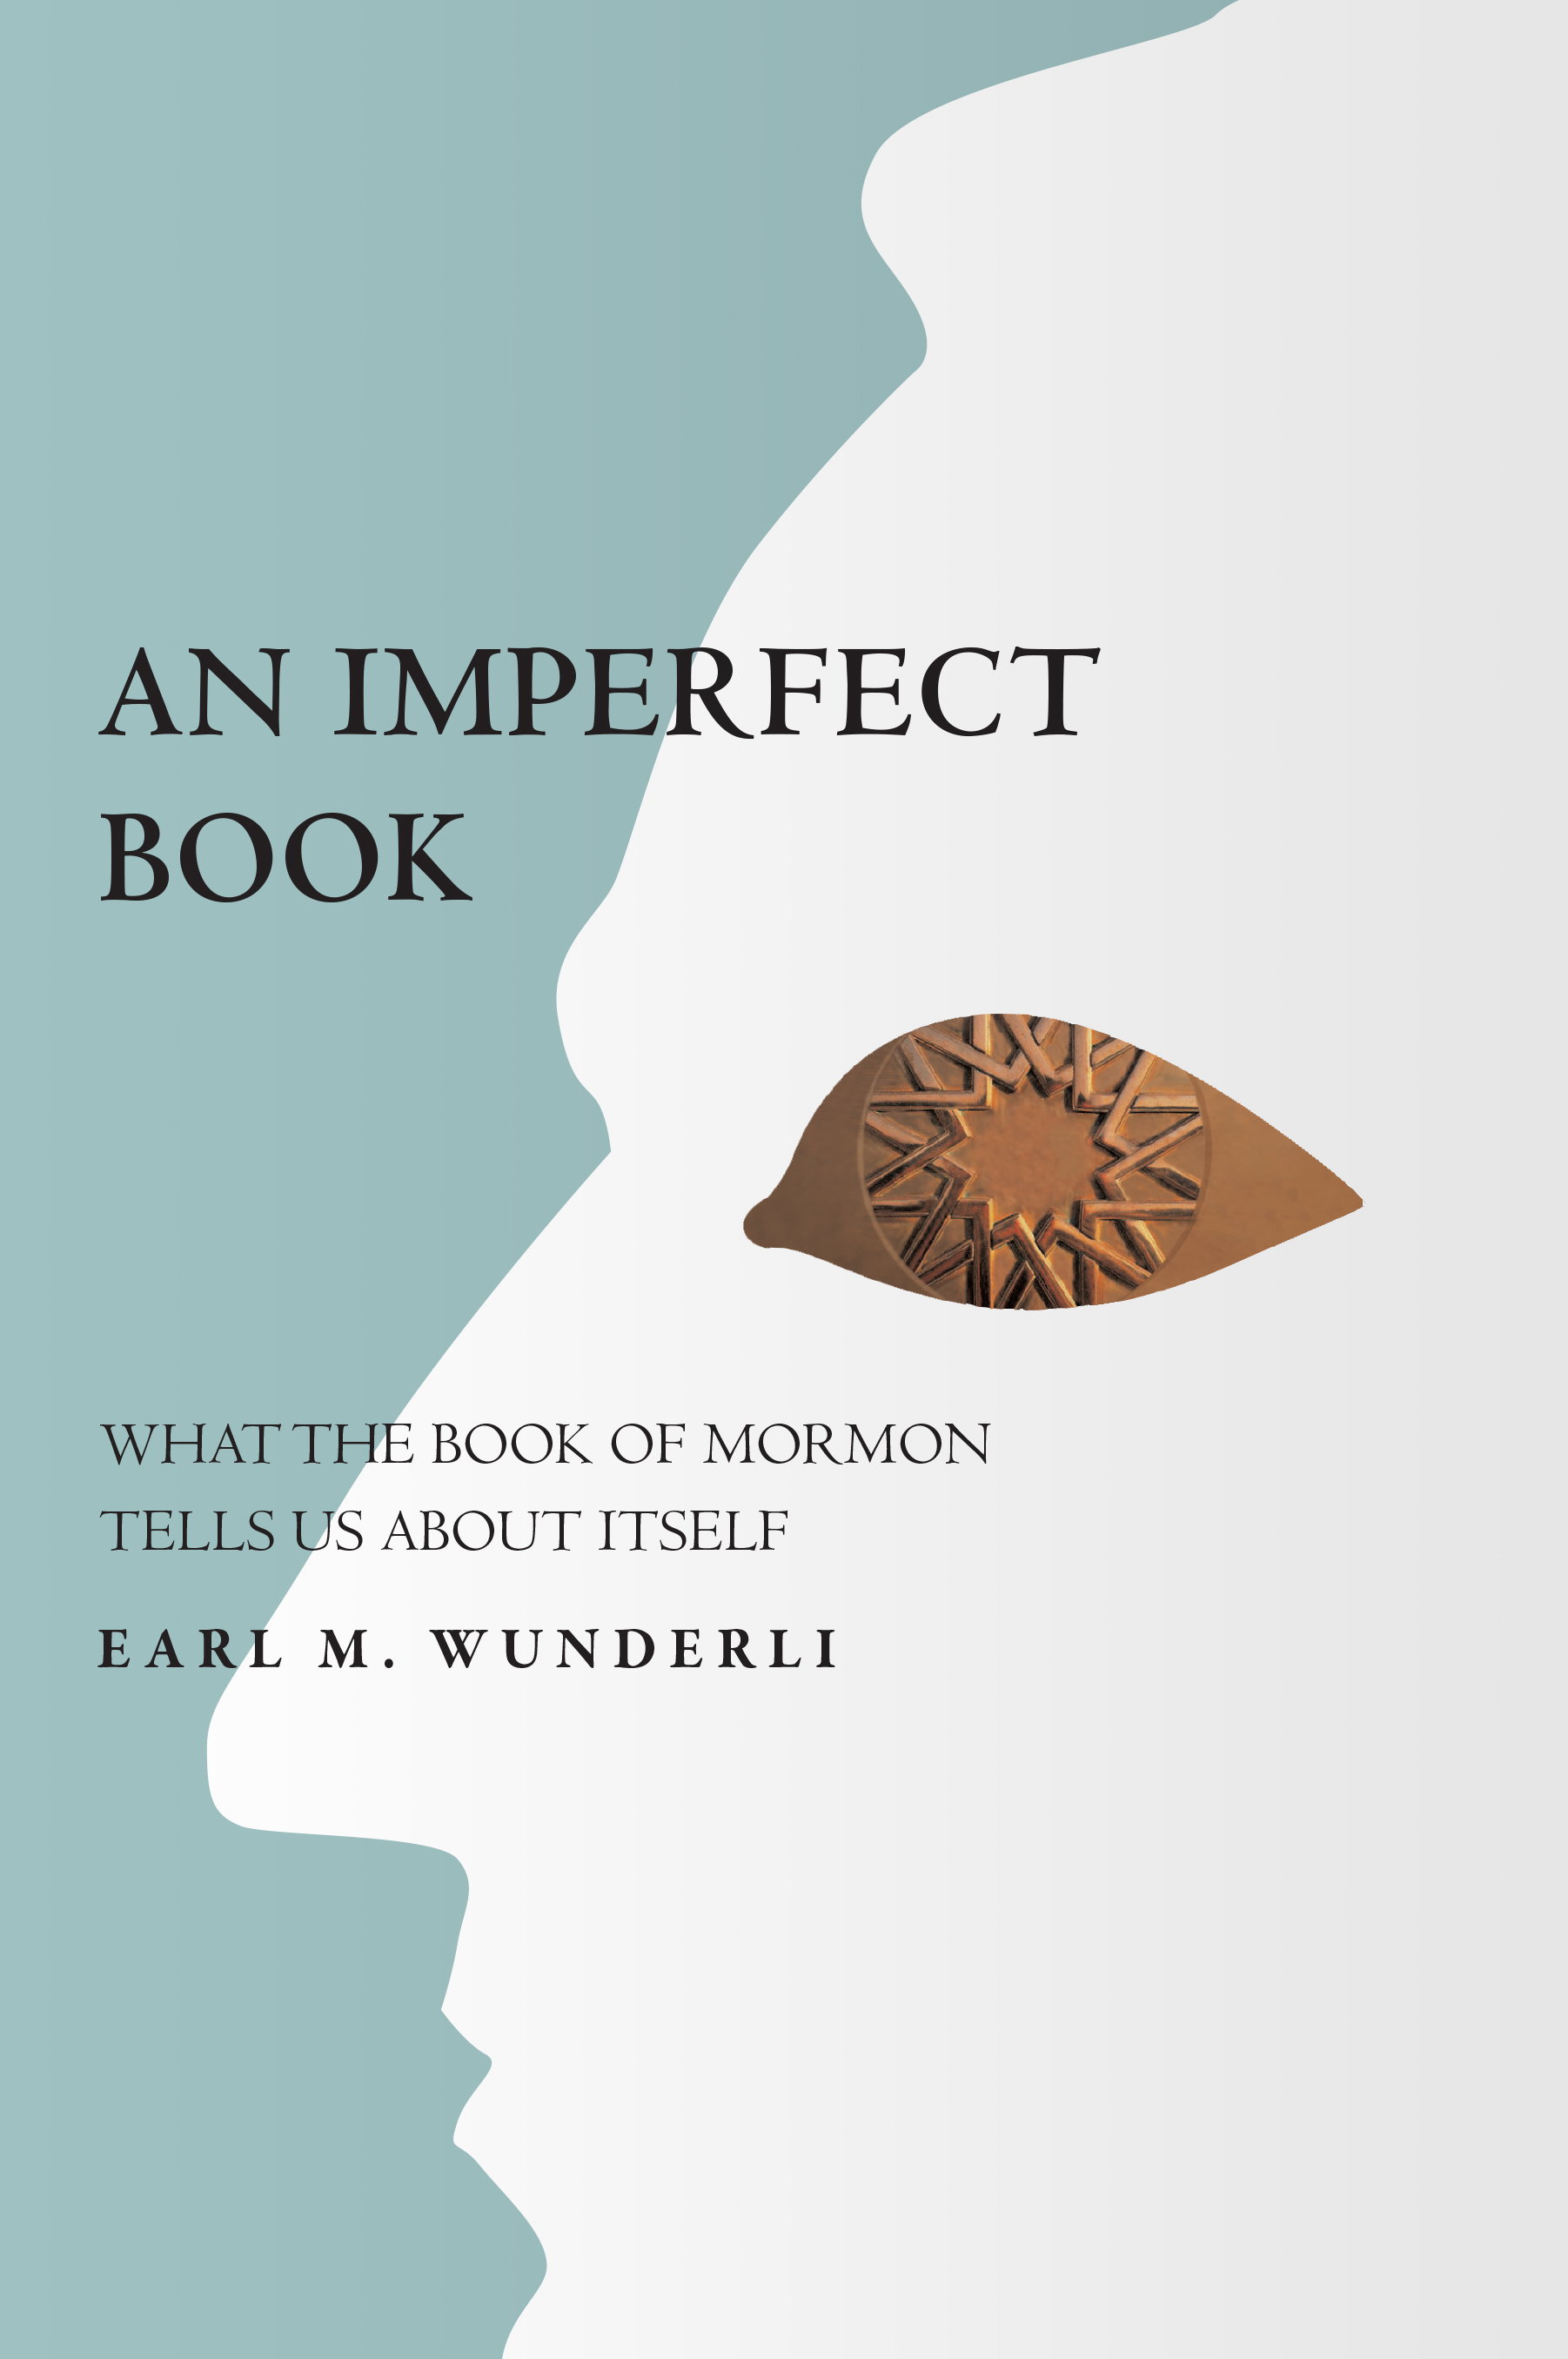 Book of mormon on trial wunderli rational faiths mormon blog book of mormon on trial wunderli buycottarizona Image collections